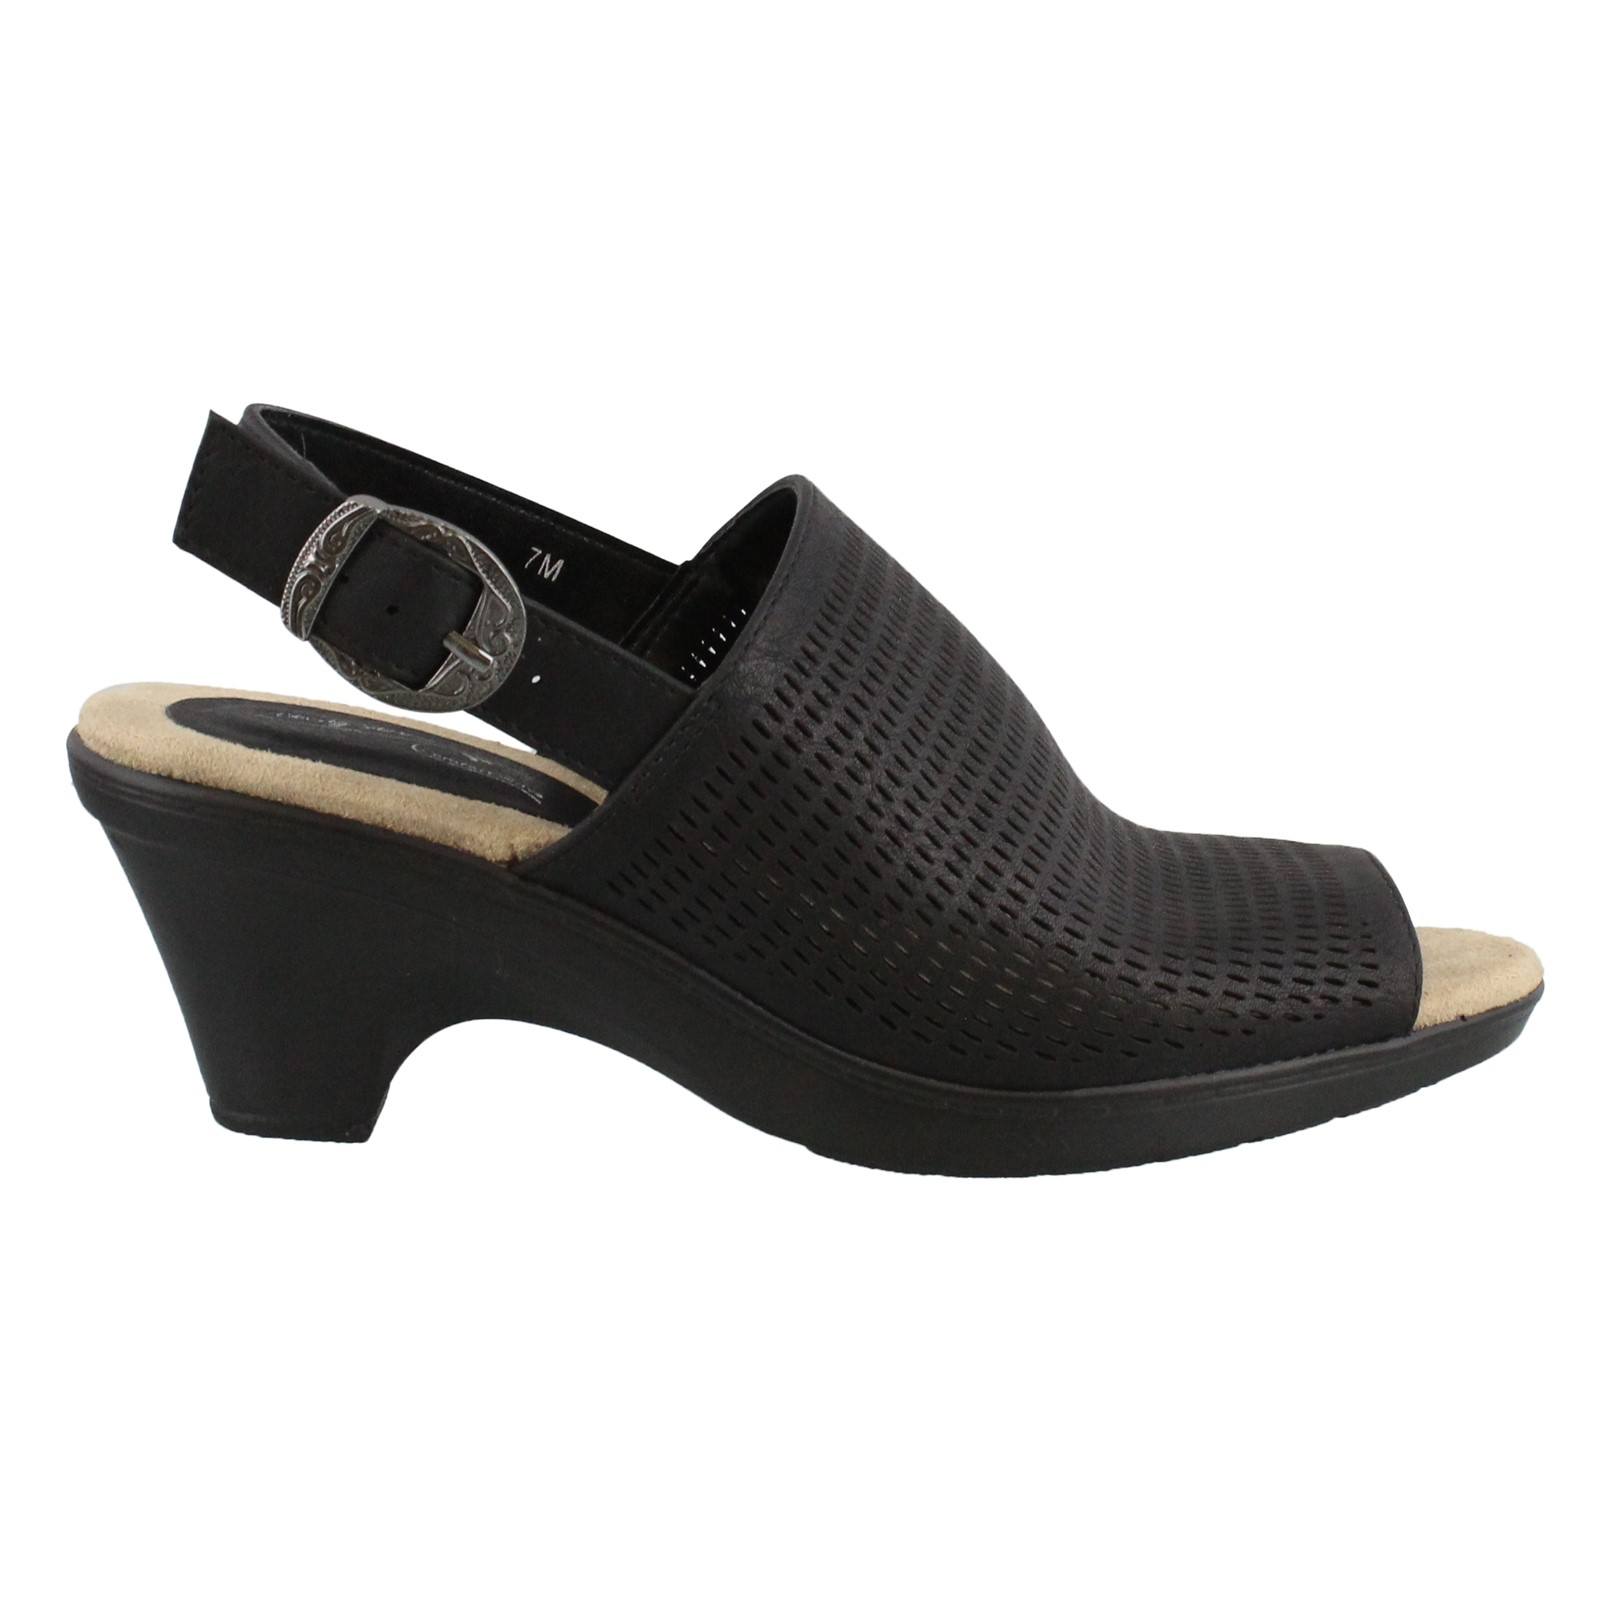 Women's Easy Street, Jessie Mid Heel Sandals